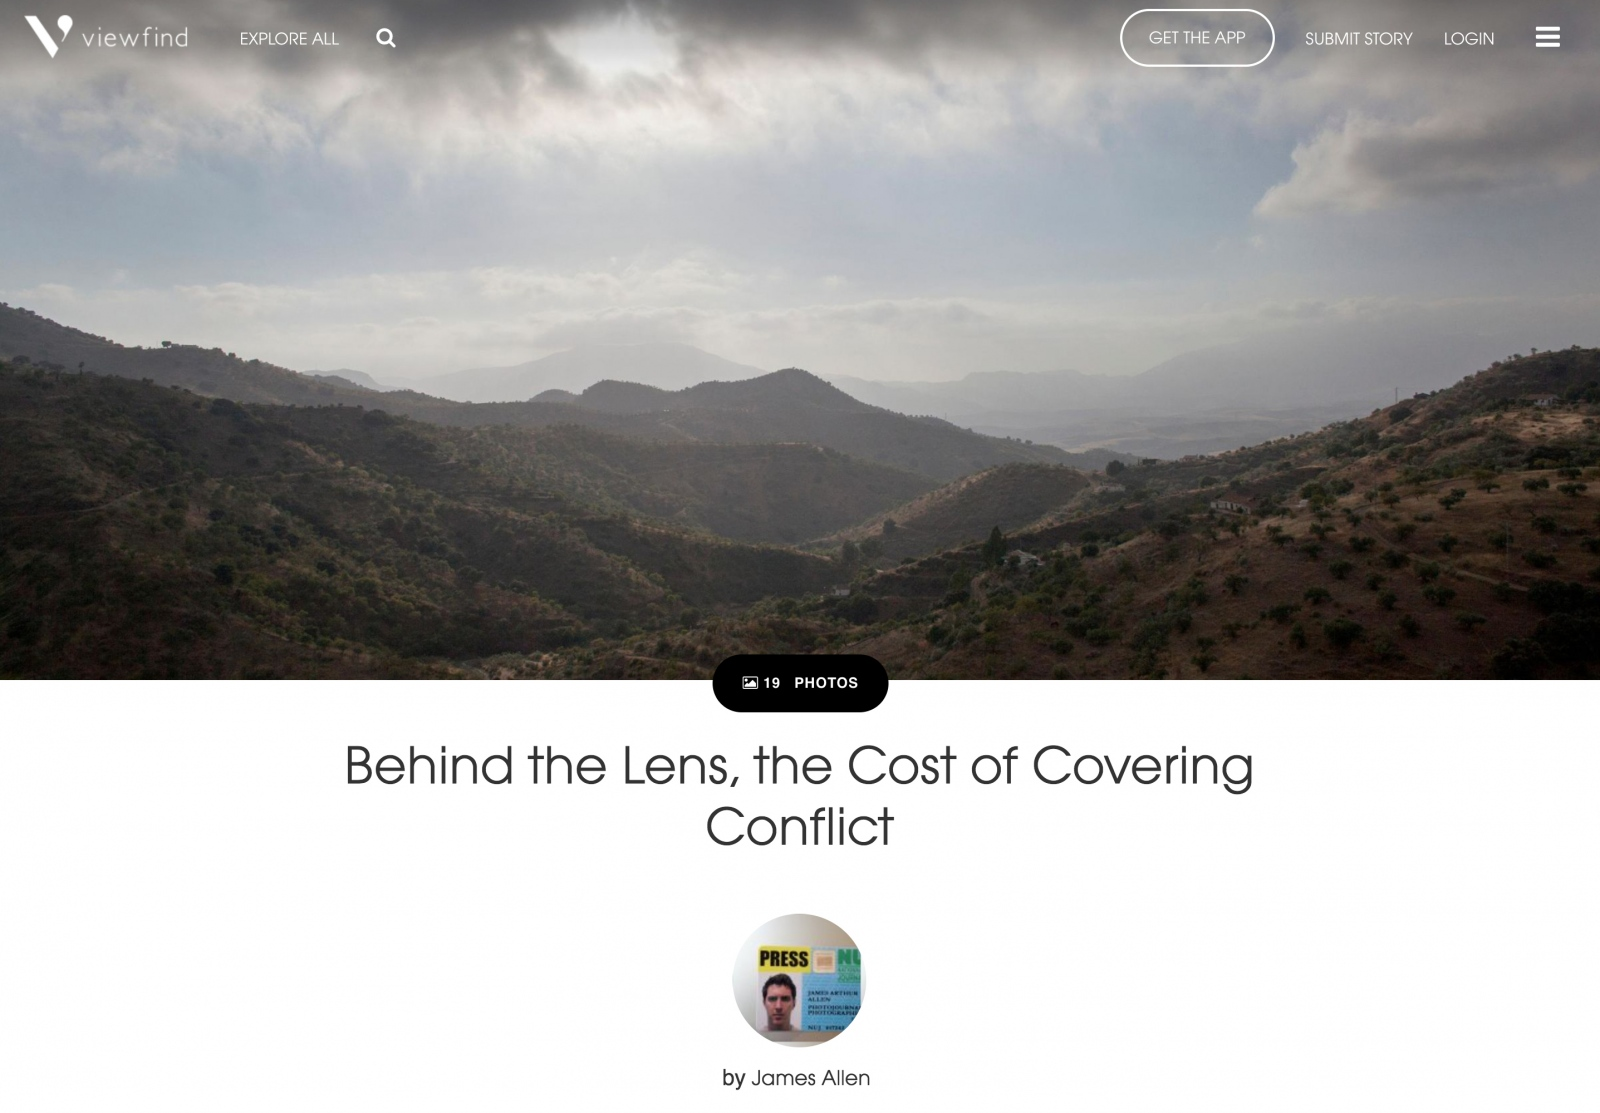 """Behind the Lens, the Cost of Covering Conflict"" by James Allen"